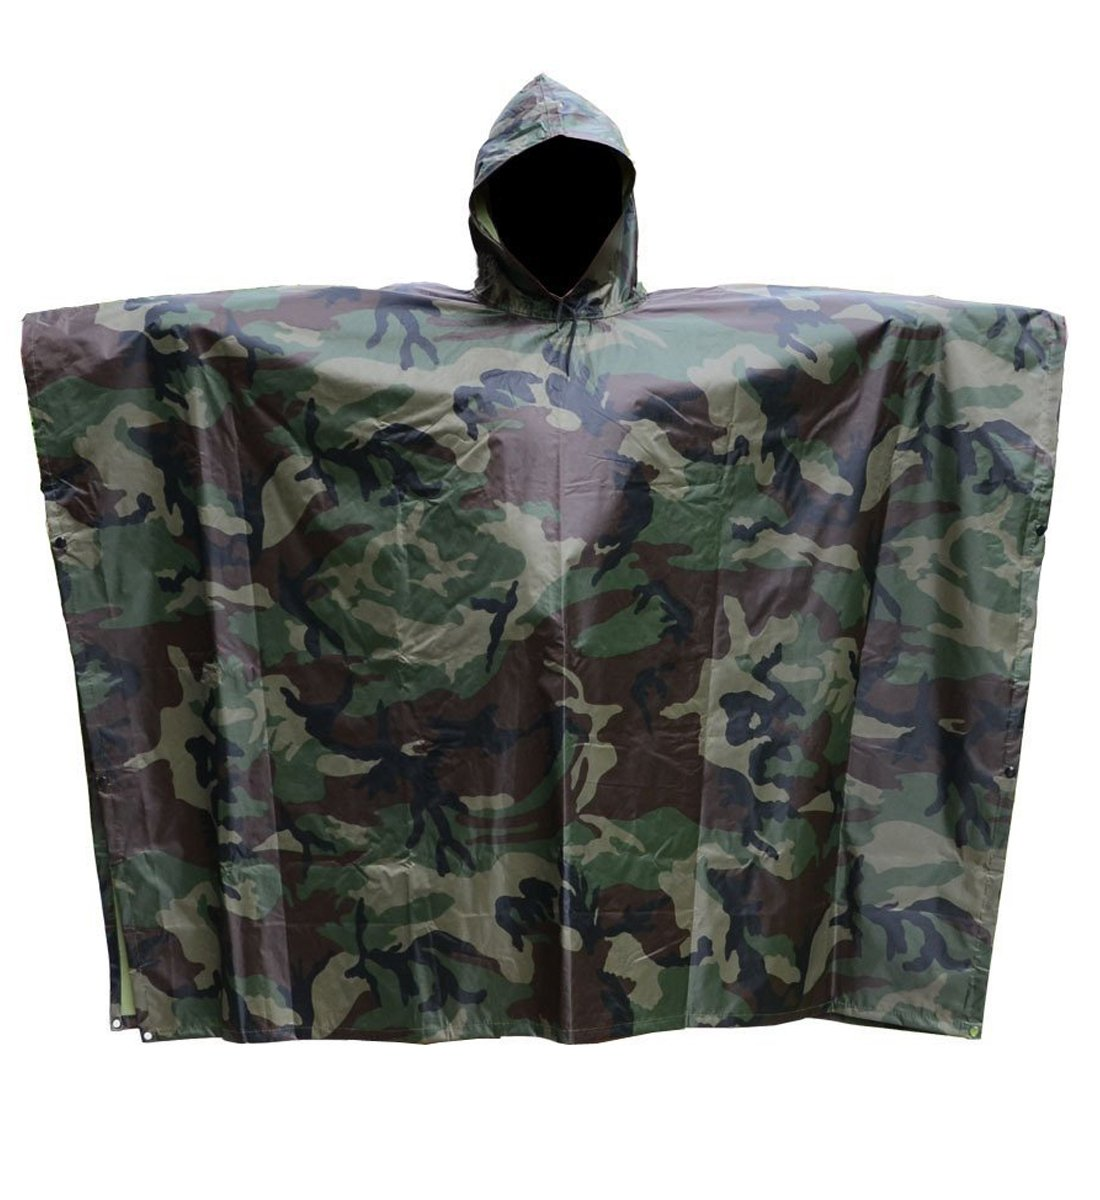 T-wilker 3 in1 Rain Poncho Waterproof Camouflage Ripstop Rain Jacket Batwing-sleeved Rain Coat with Hoods (Camo) by T-wilker